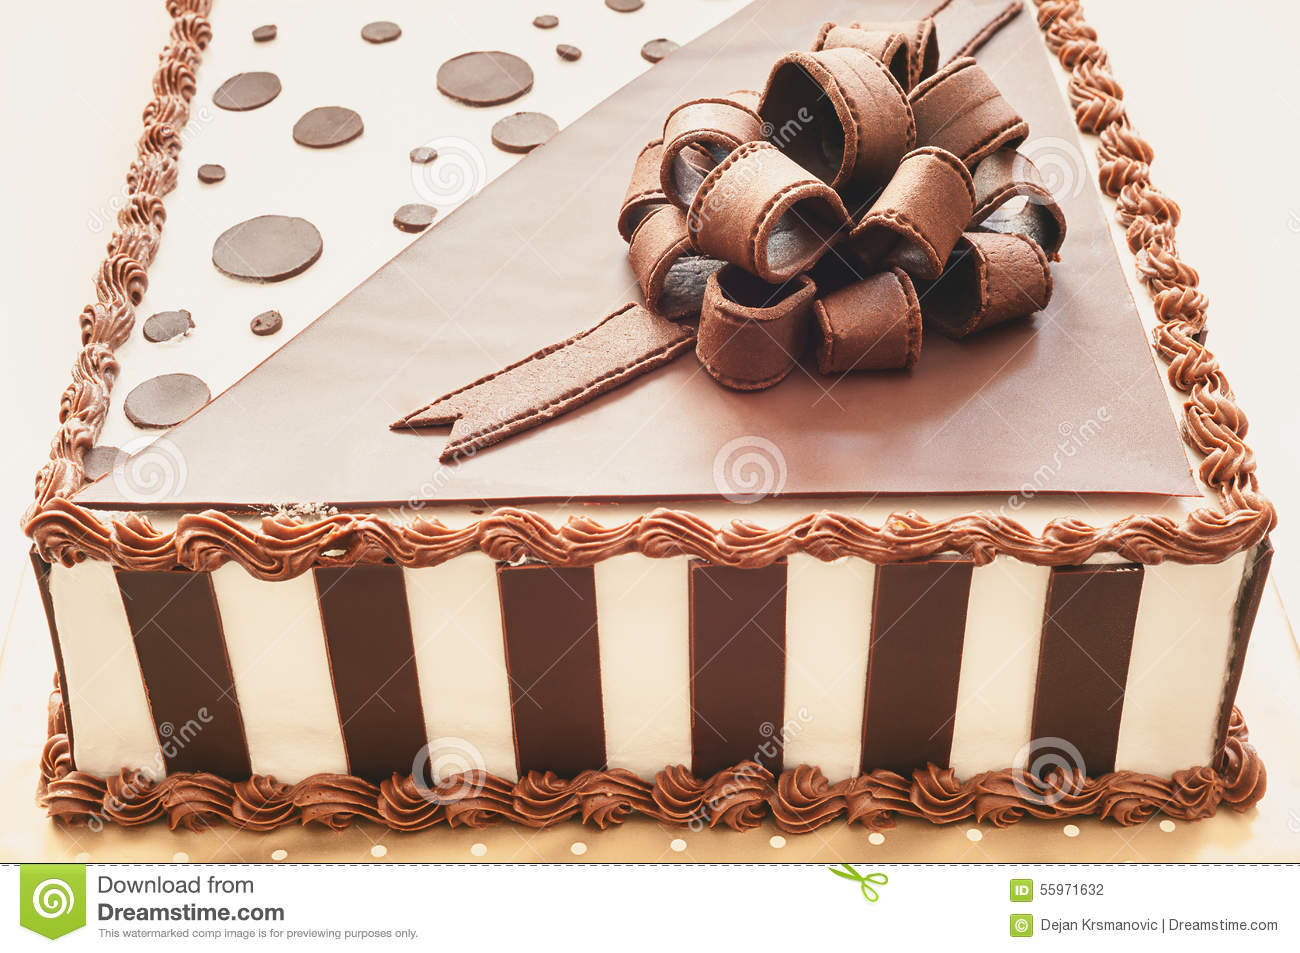 La decoration de gateau au chocolat